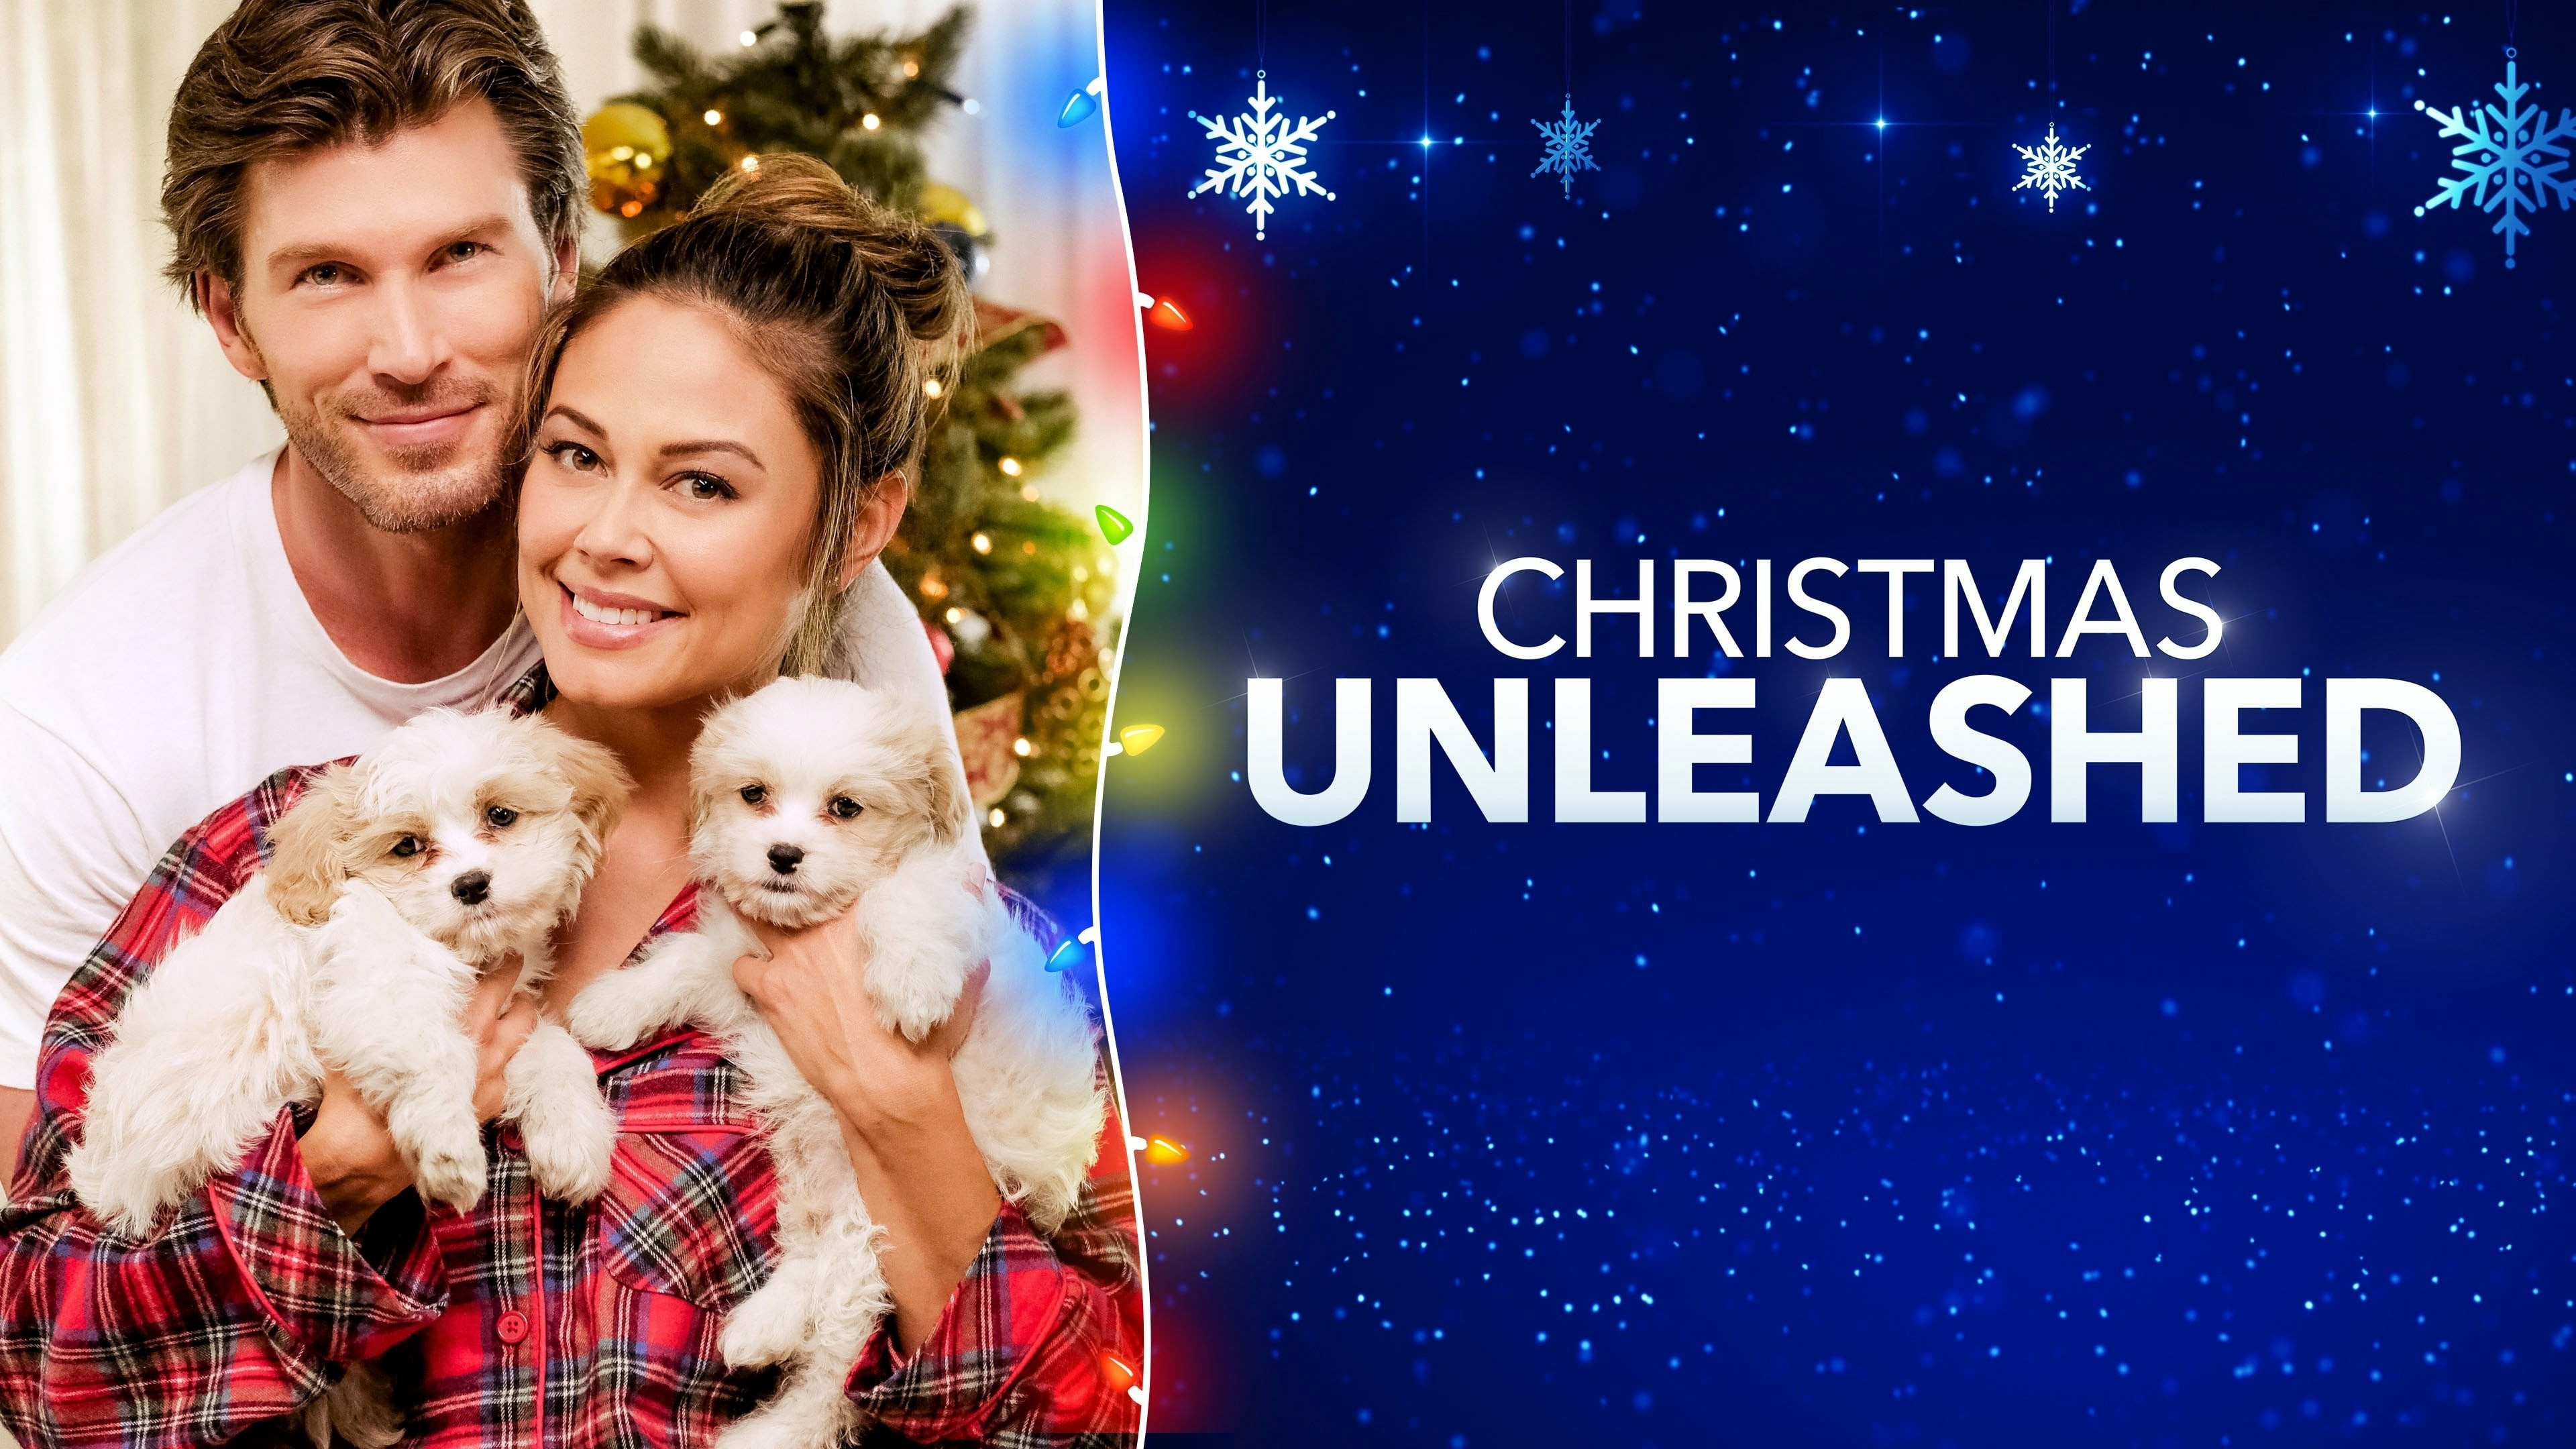 WaTch MoVies ~ Christmas Unleashed (2019) Full Watch strēmiNG